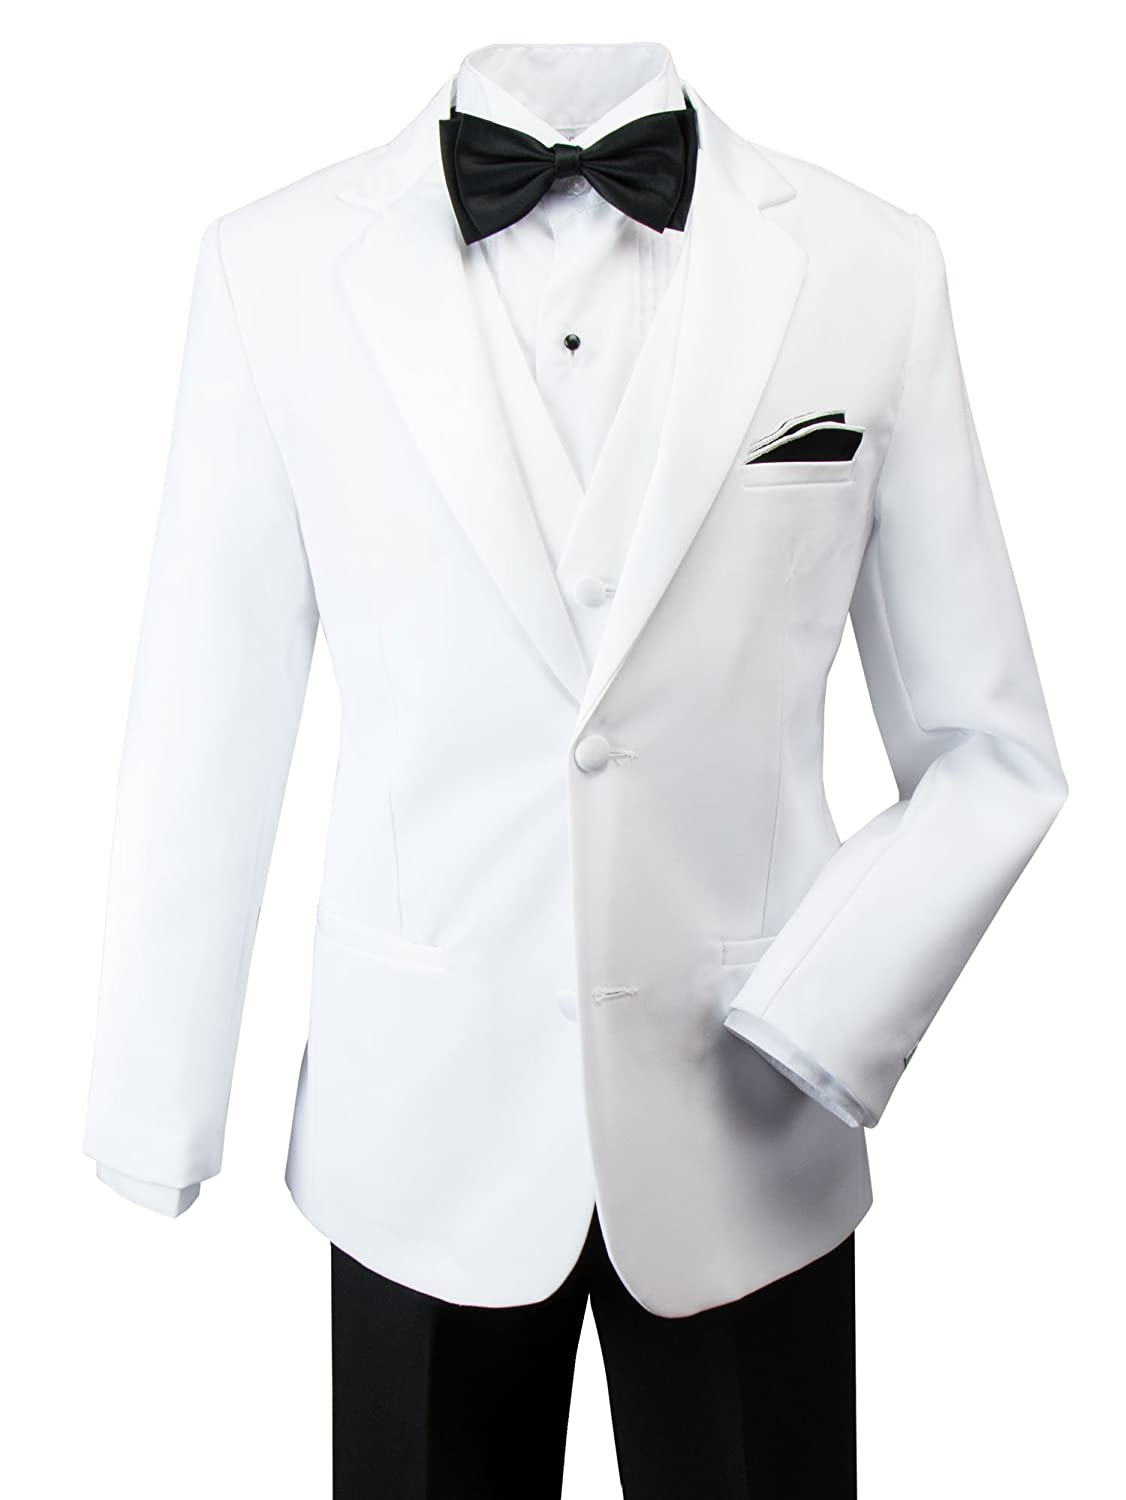 Spring Notion Little Boys' Modern Fit Tuxedo Set, No Tail ERF012-SNL-012